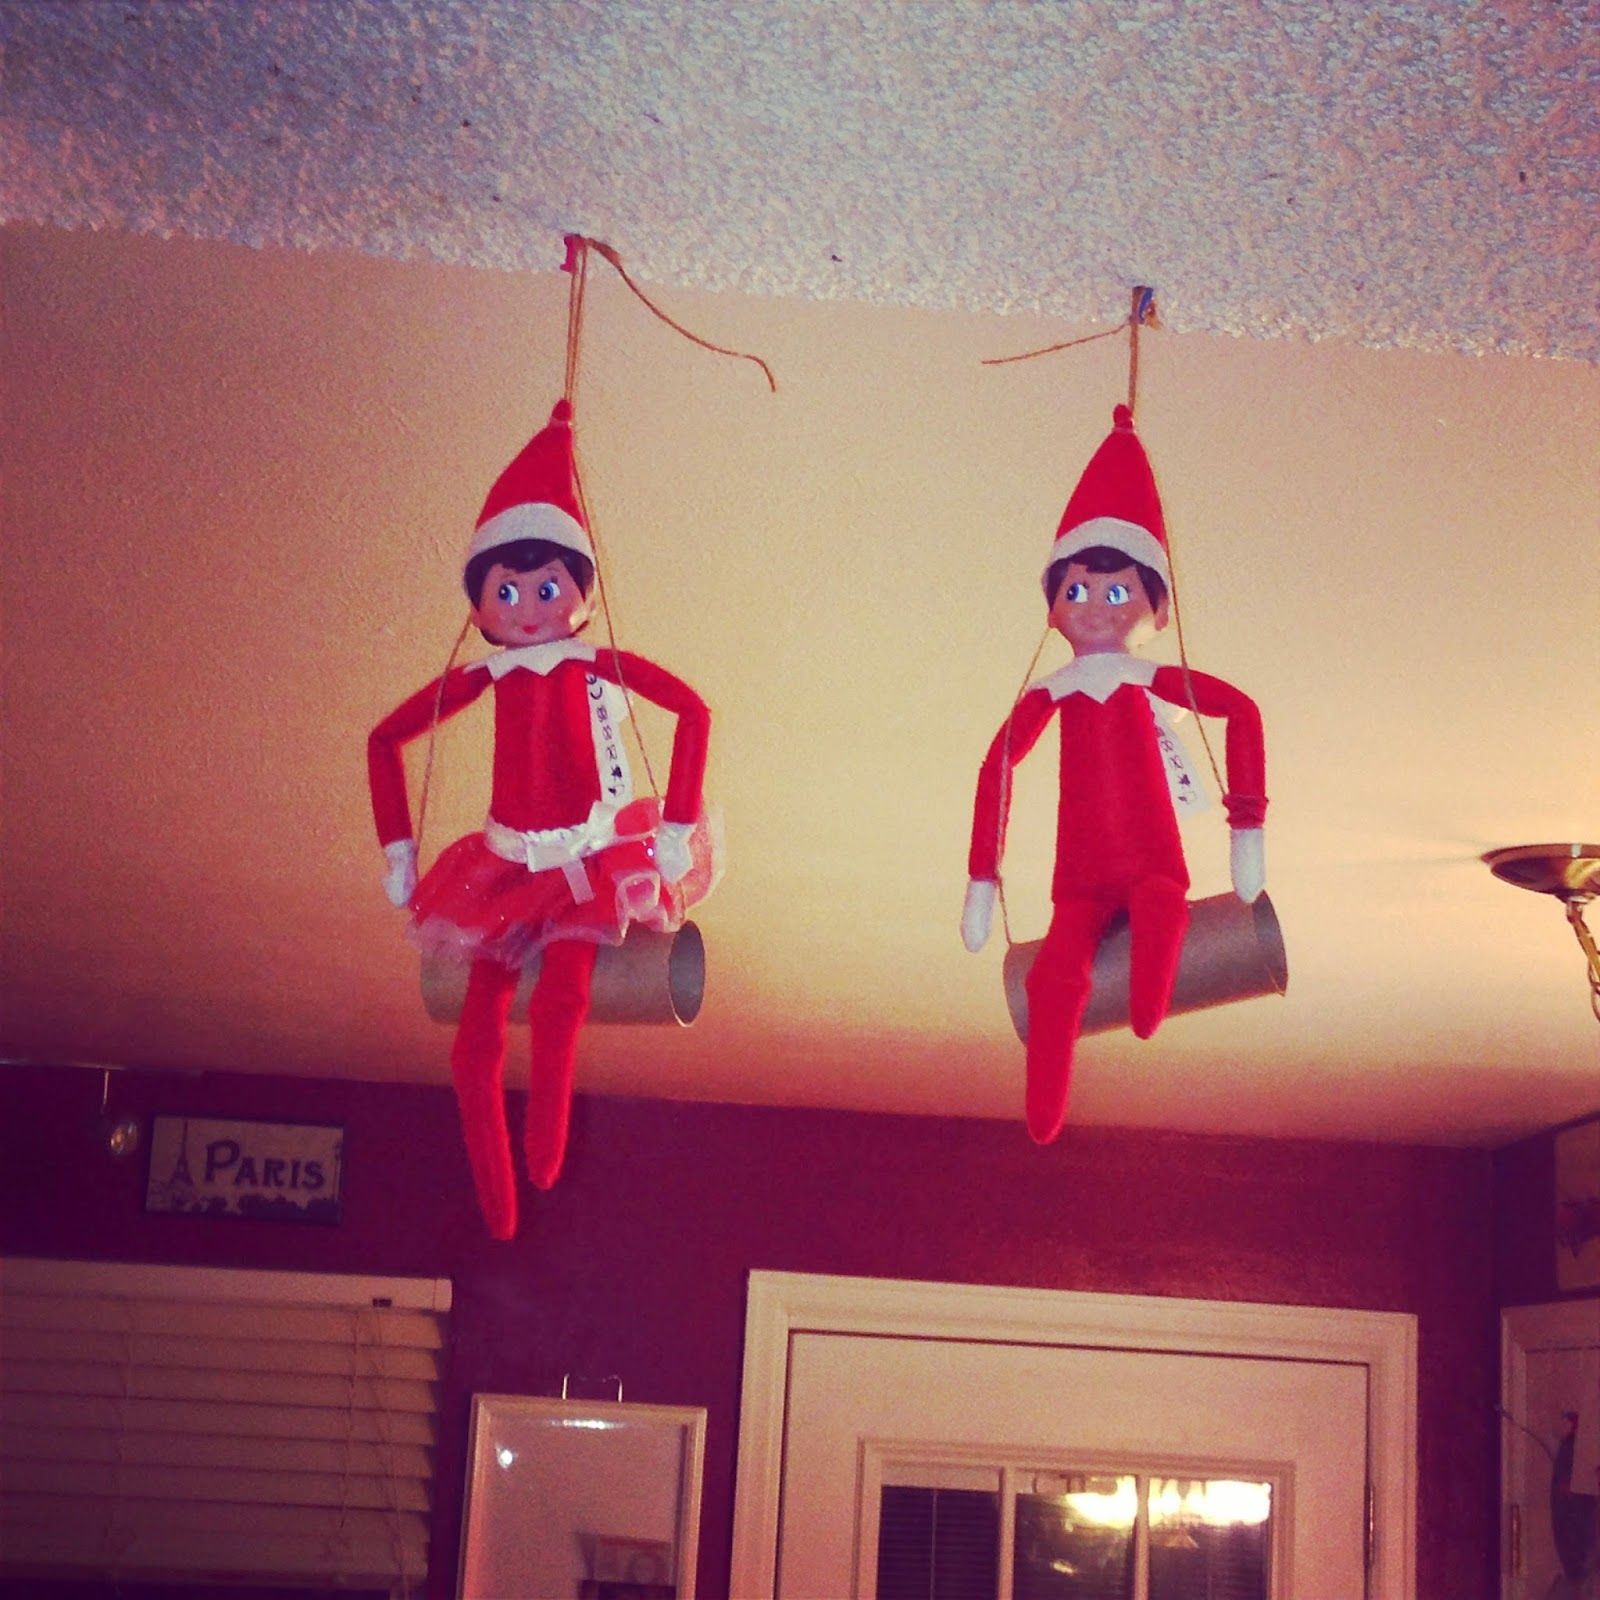 9 days ago· Elf on the Shelf ideas Brilliant places to hide Santa's little helper These are some of best Elf on the Shelf ideas to help out parents this Christmas Share.